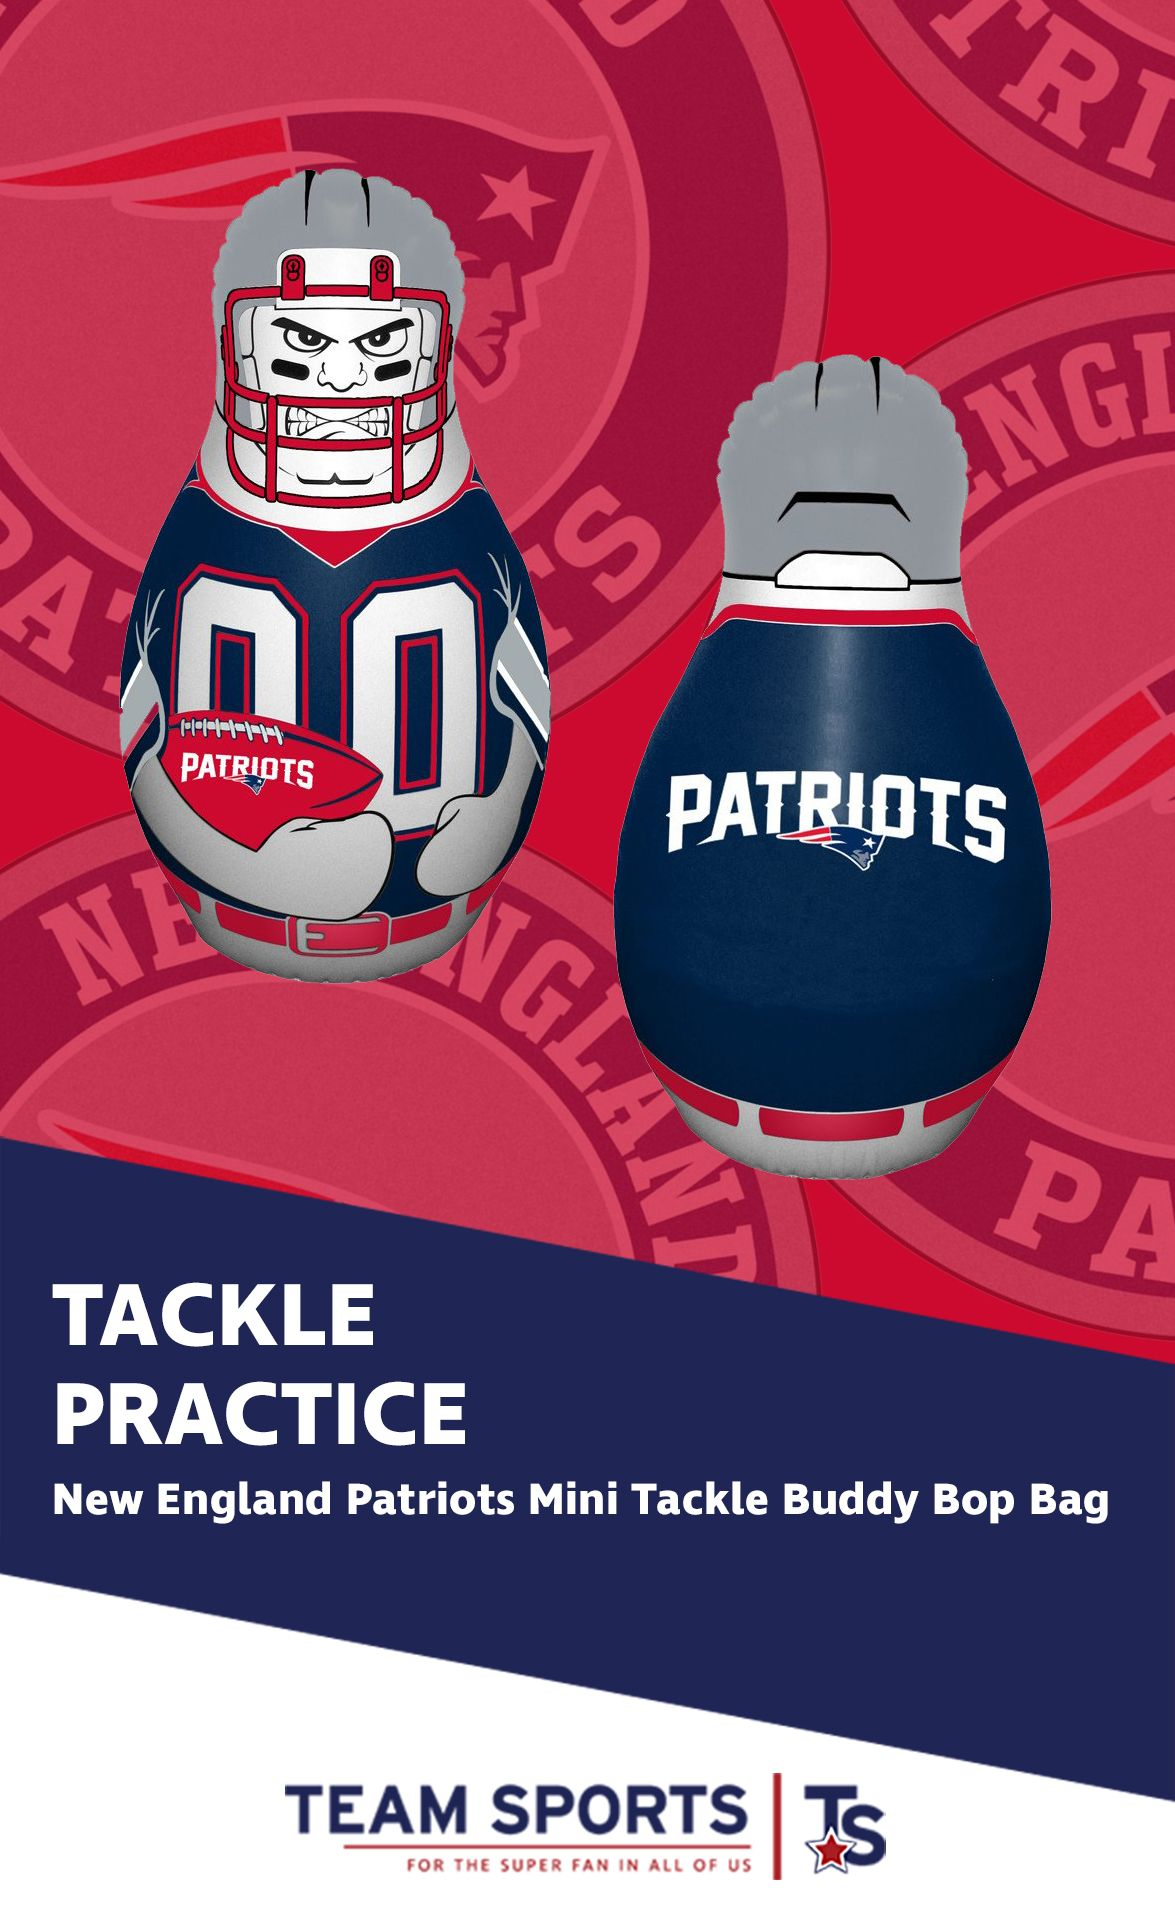 patriots england team sports bag merchandise gifts football prices nfl punching tackle inflatable fan gear teamsportsgift buddy bop feel